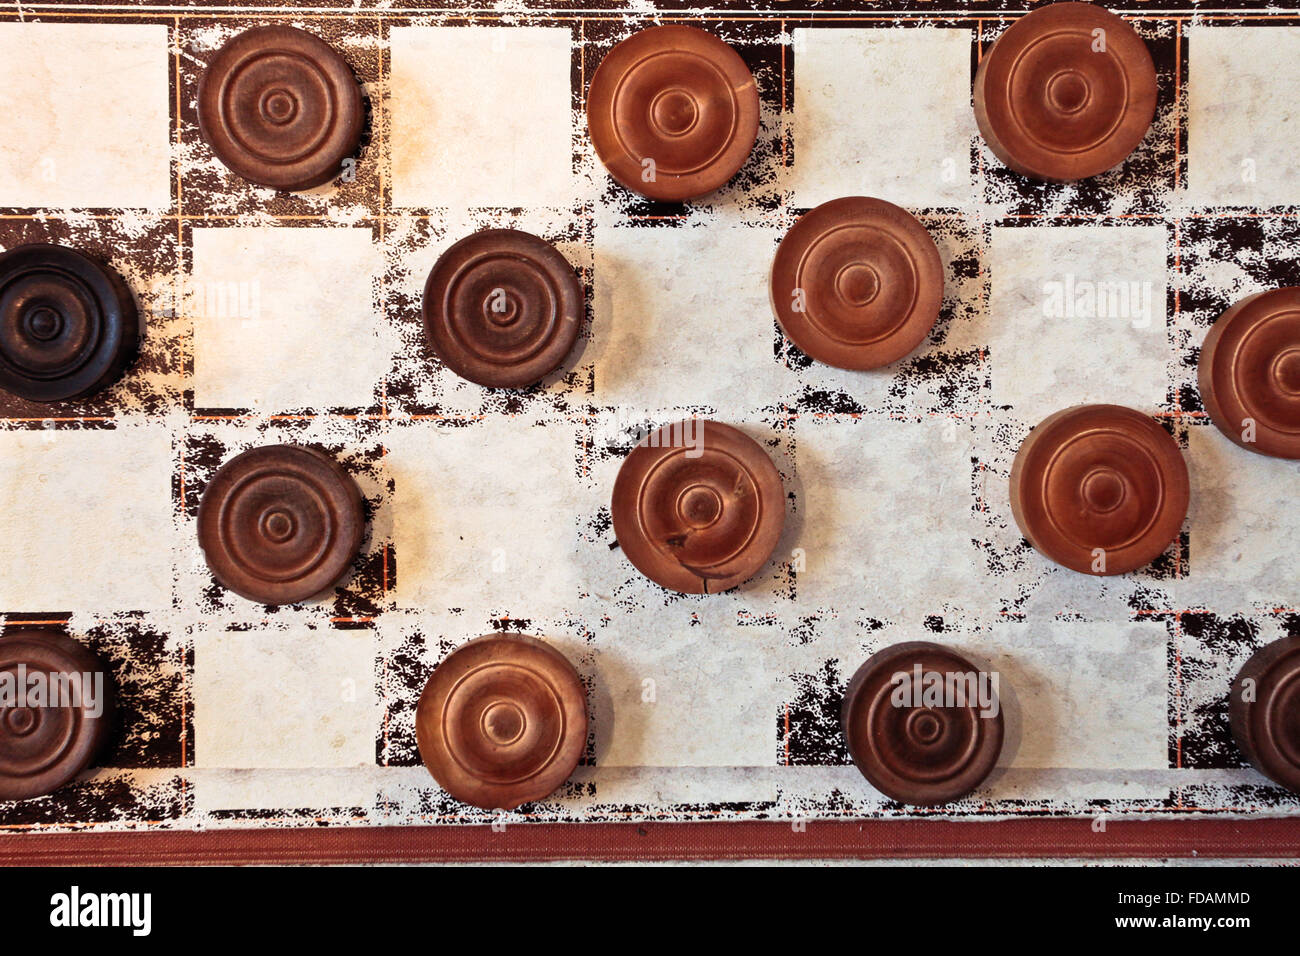 Part of a vintage game of draughts - Stock Image